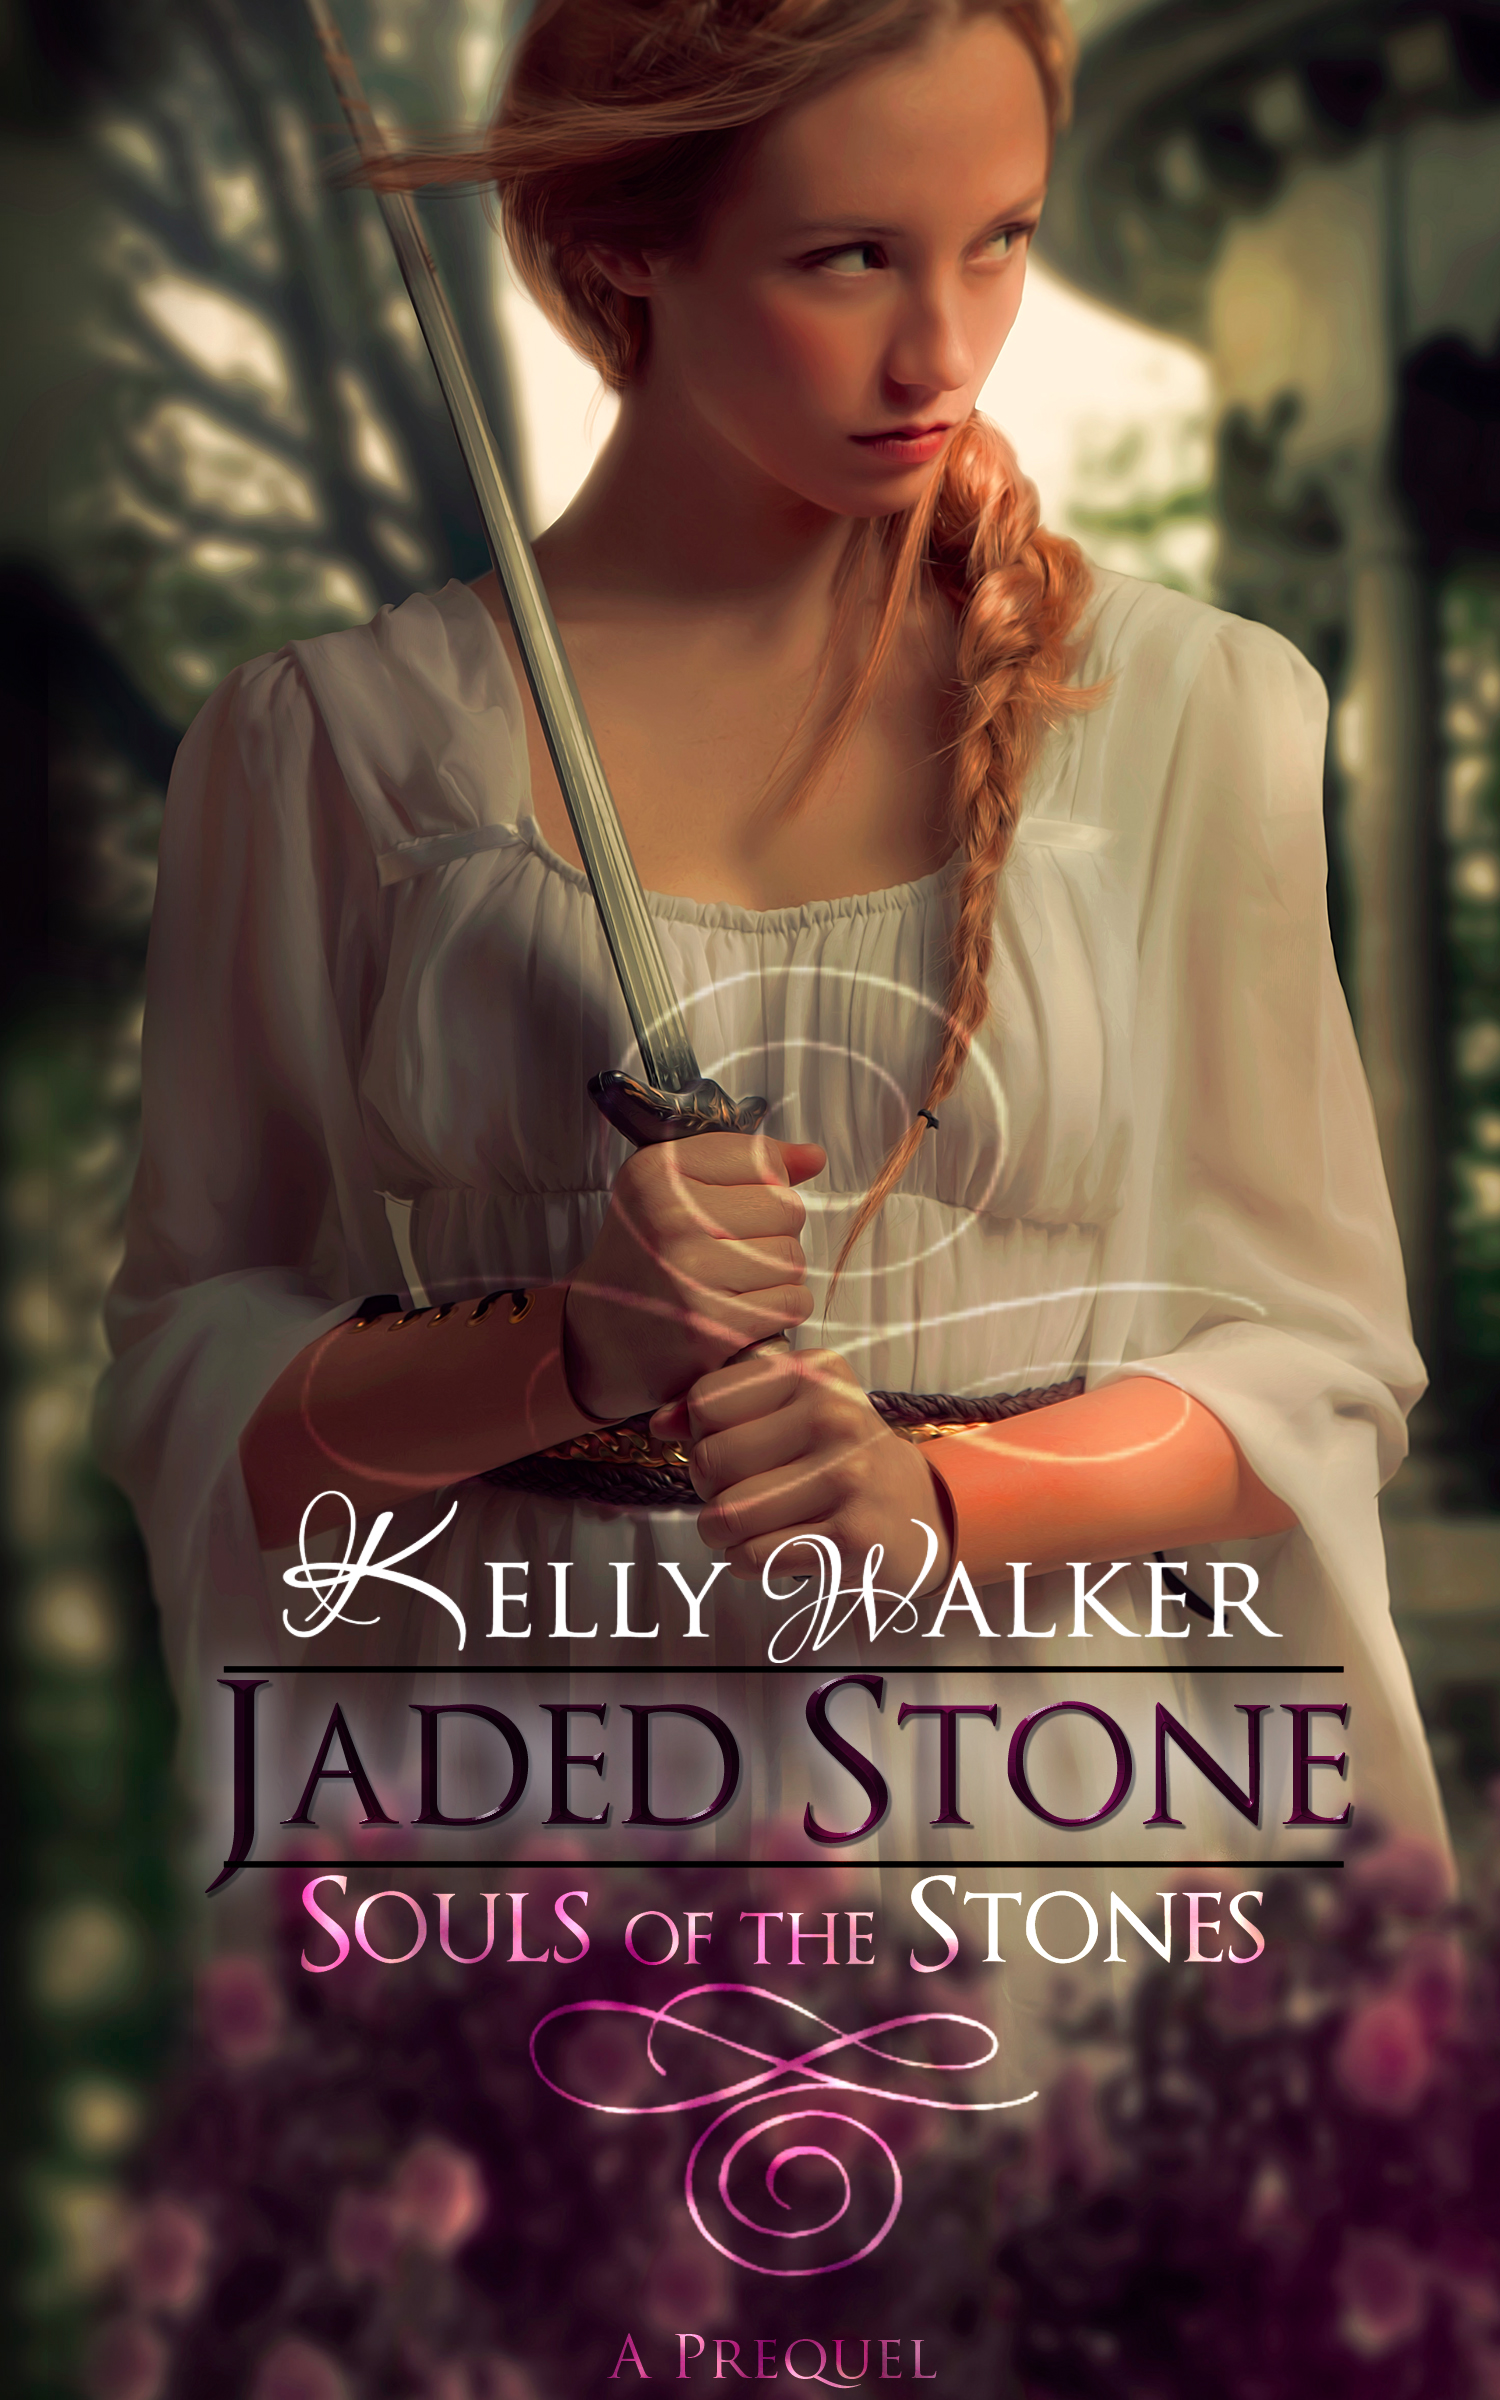 Jaded Stone – New release news and your chance to win a $50 giveaway.